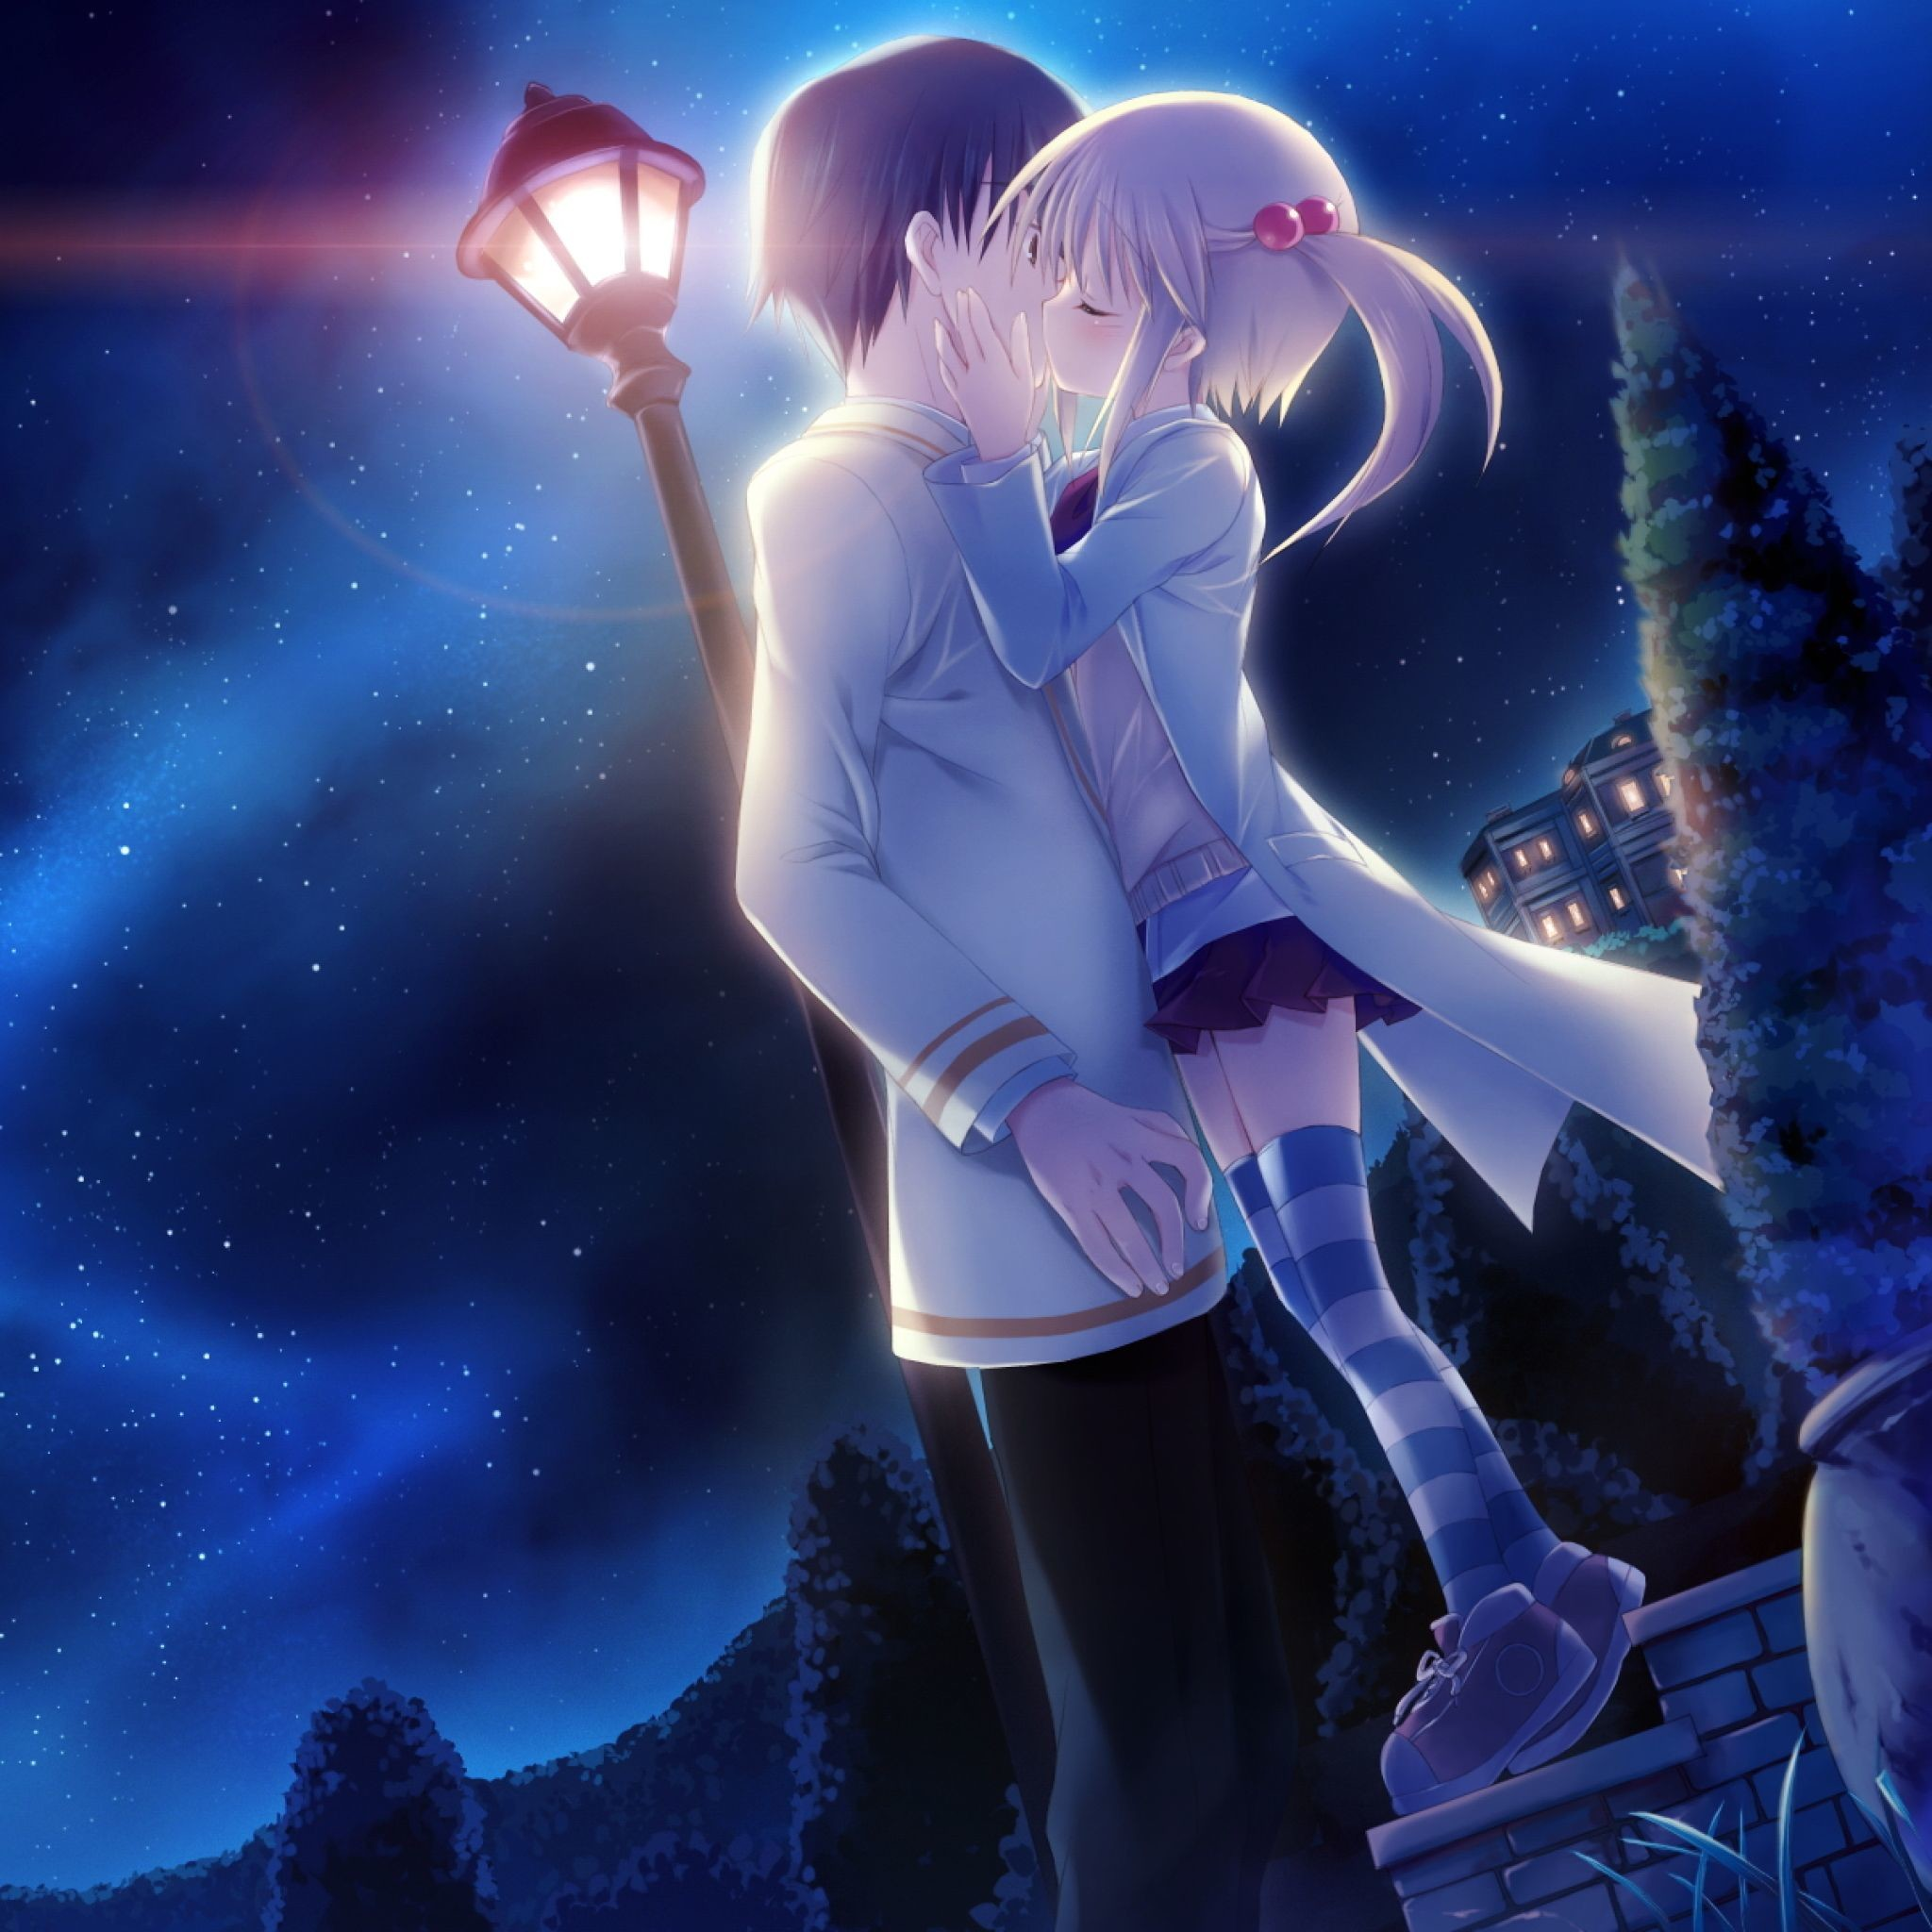 Anime Love Wallpapers 72 Images